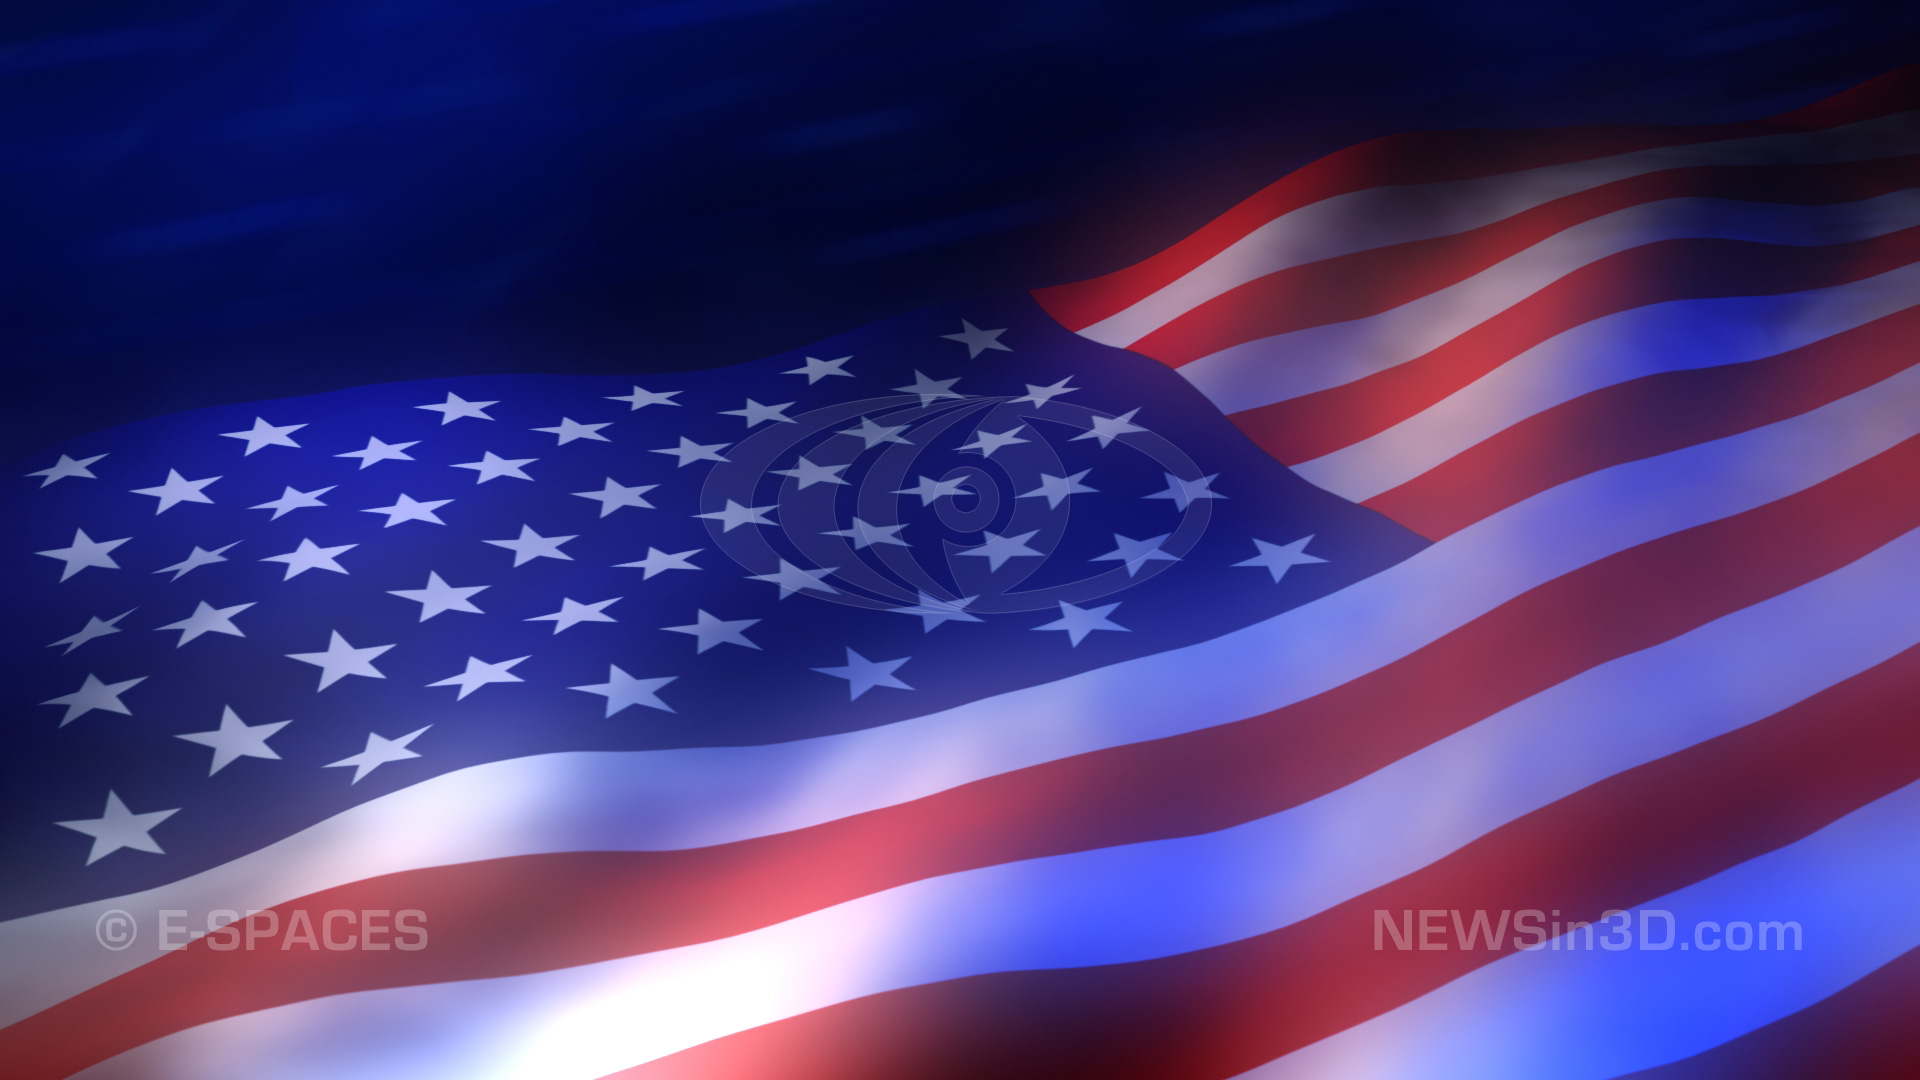 flag backgrounds background presidential american election 1920x1080